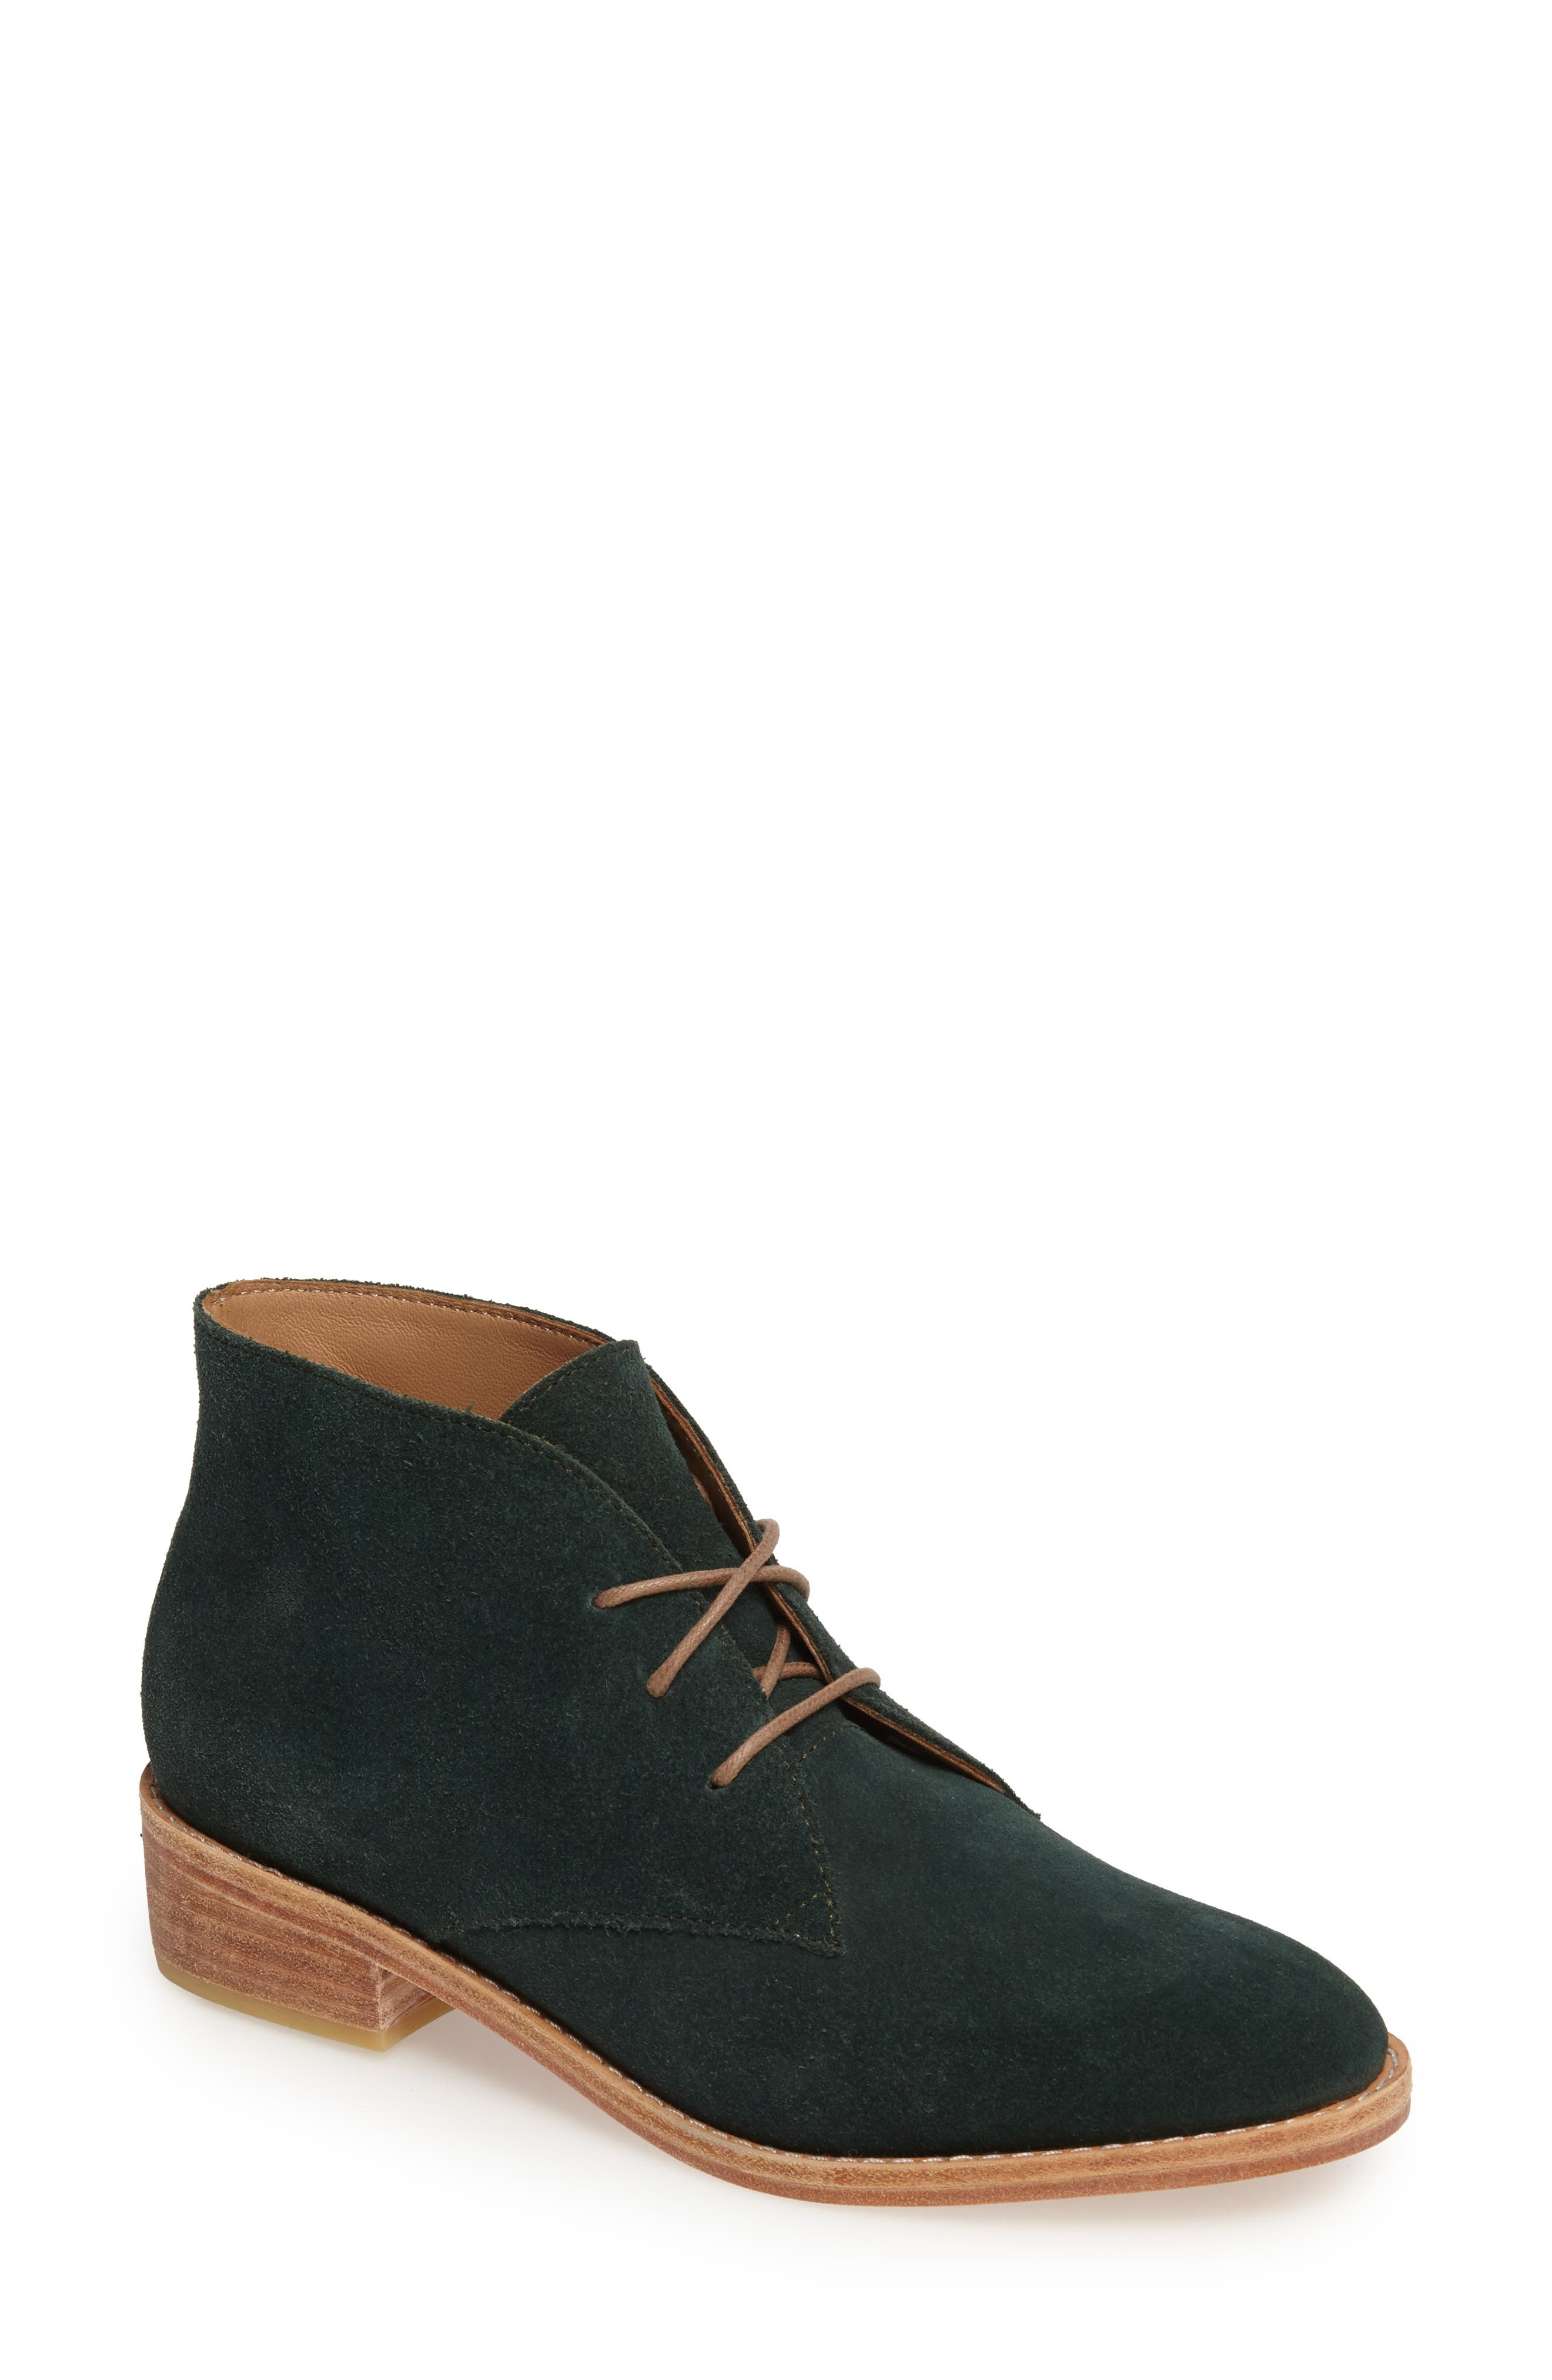 Manuela Chukka Boot,                             Main thumbnail 1, color,                             Forest Green Suede